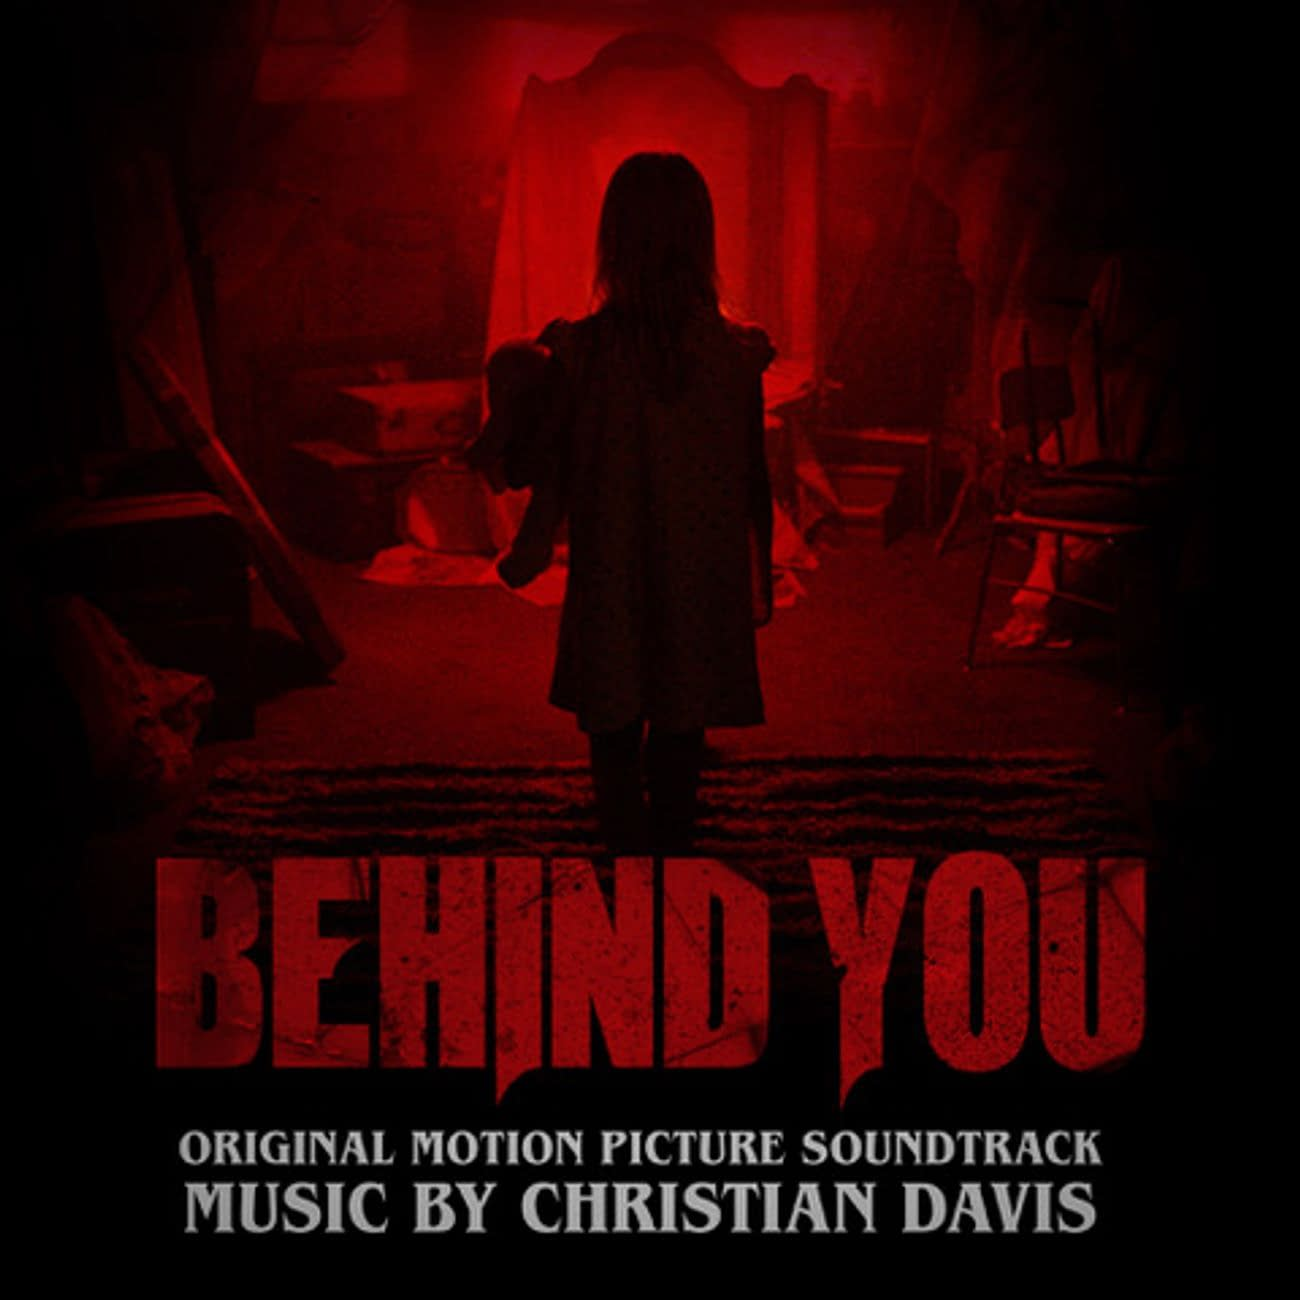 Christian Christmas Soundtracks 2020 Exclusive: Hear 2 Tracks From Soundtrack to Horror Film Behind You